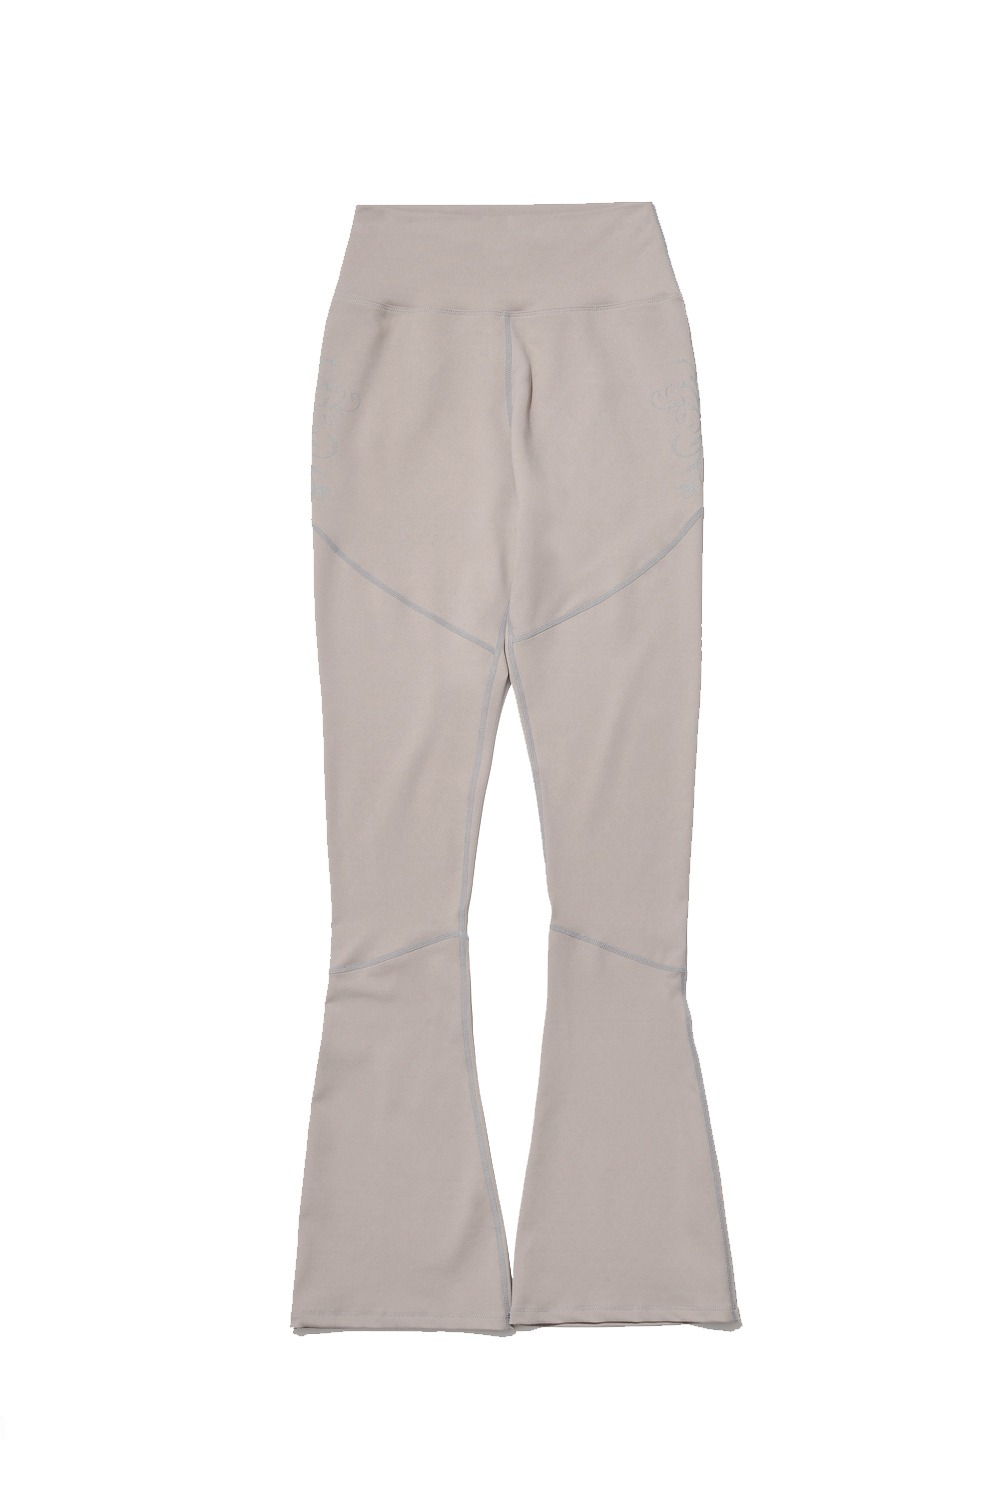 PROJECT MAGO_ORCHID FLARED LEGGINGS_BEIGE